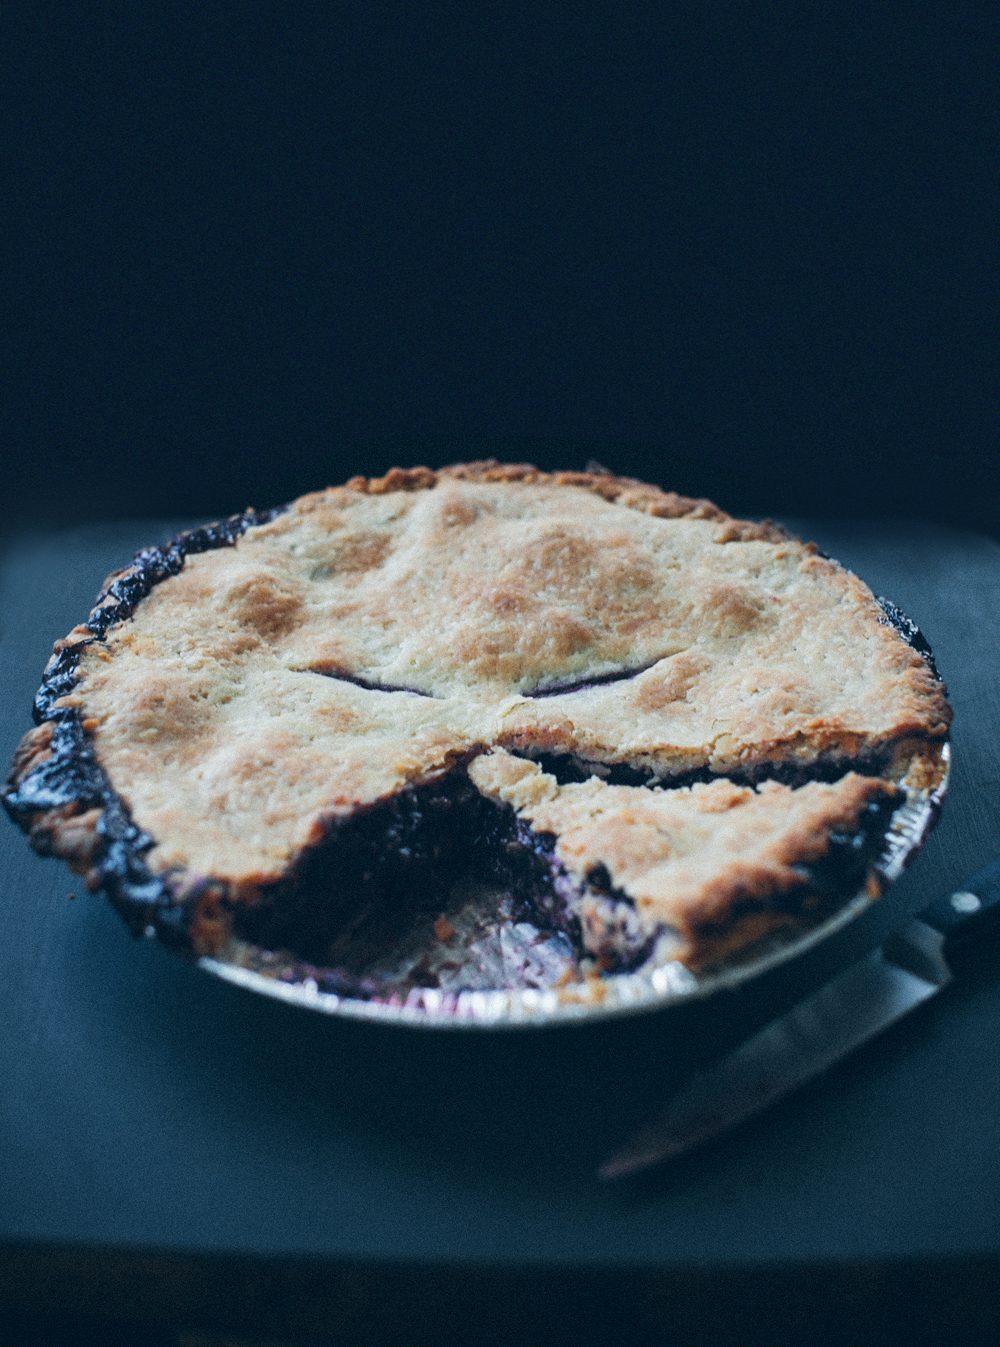 Black-berry-pie-9949.jpg